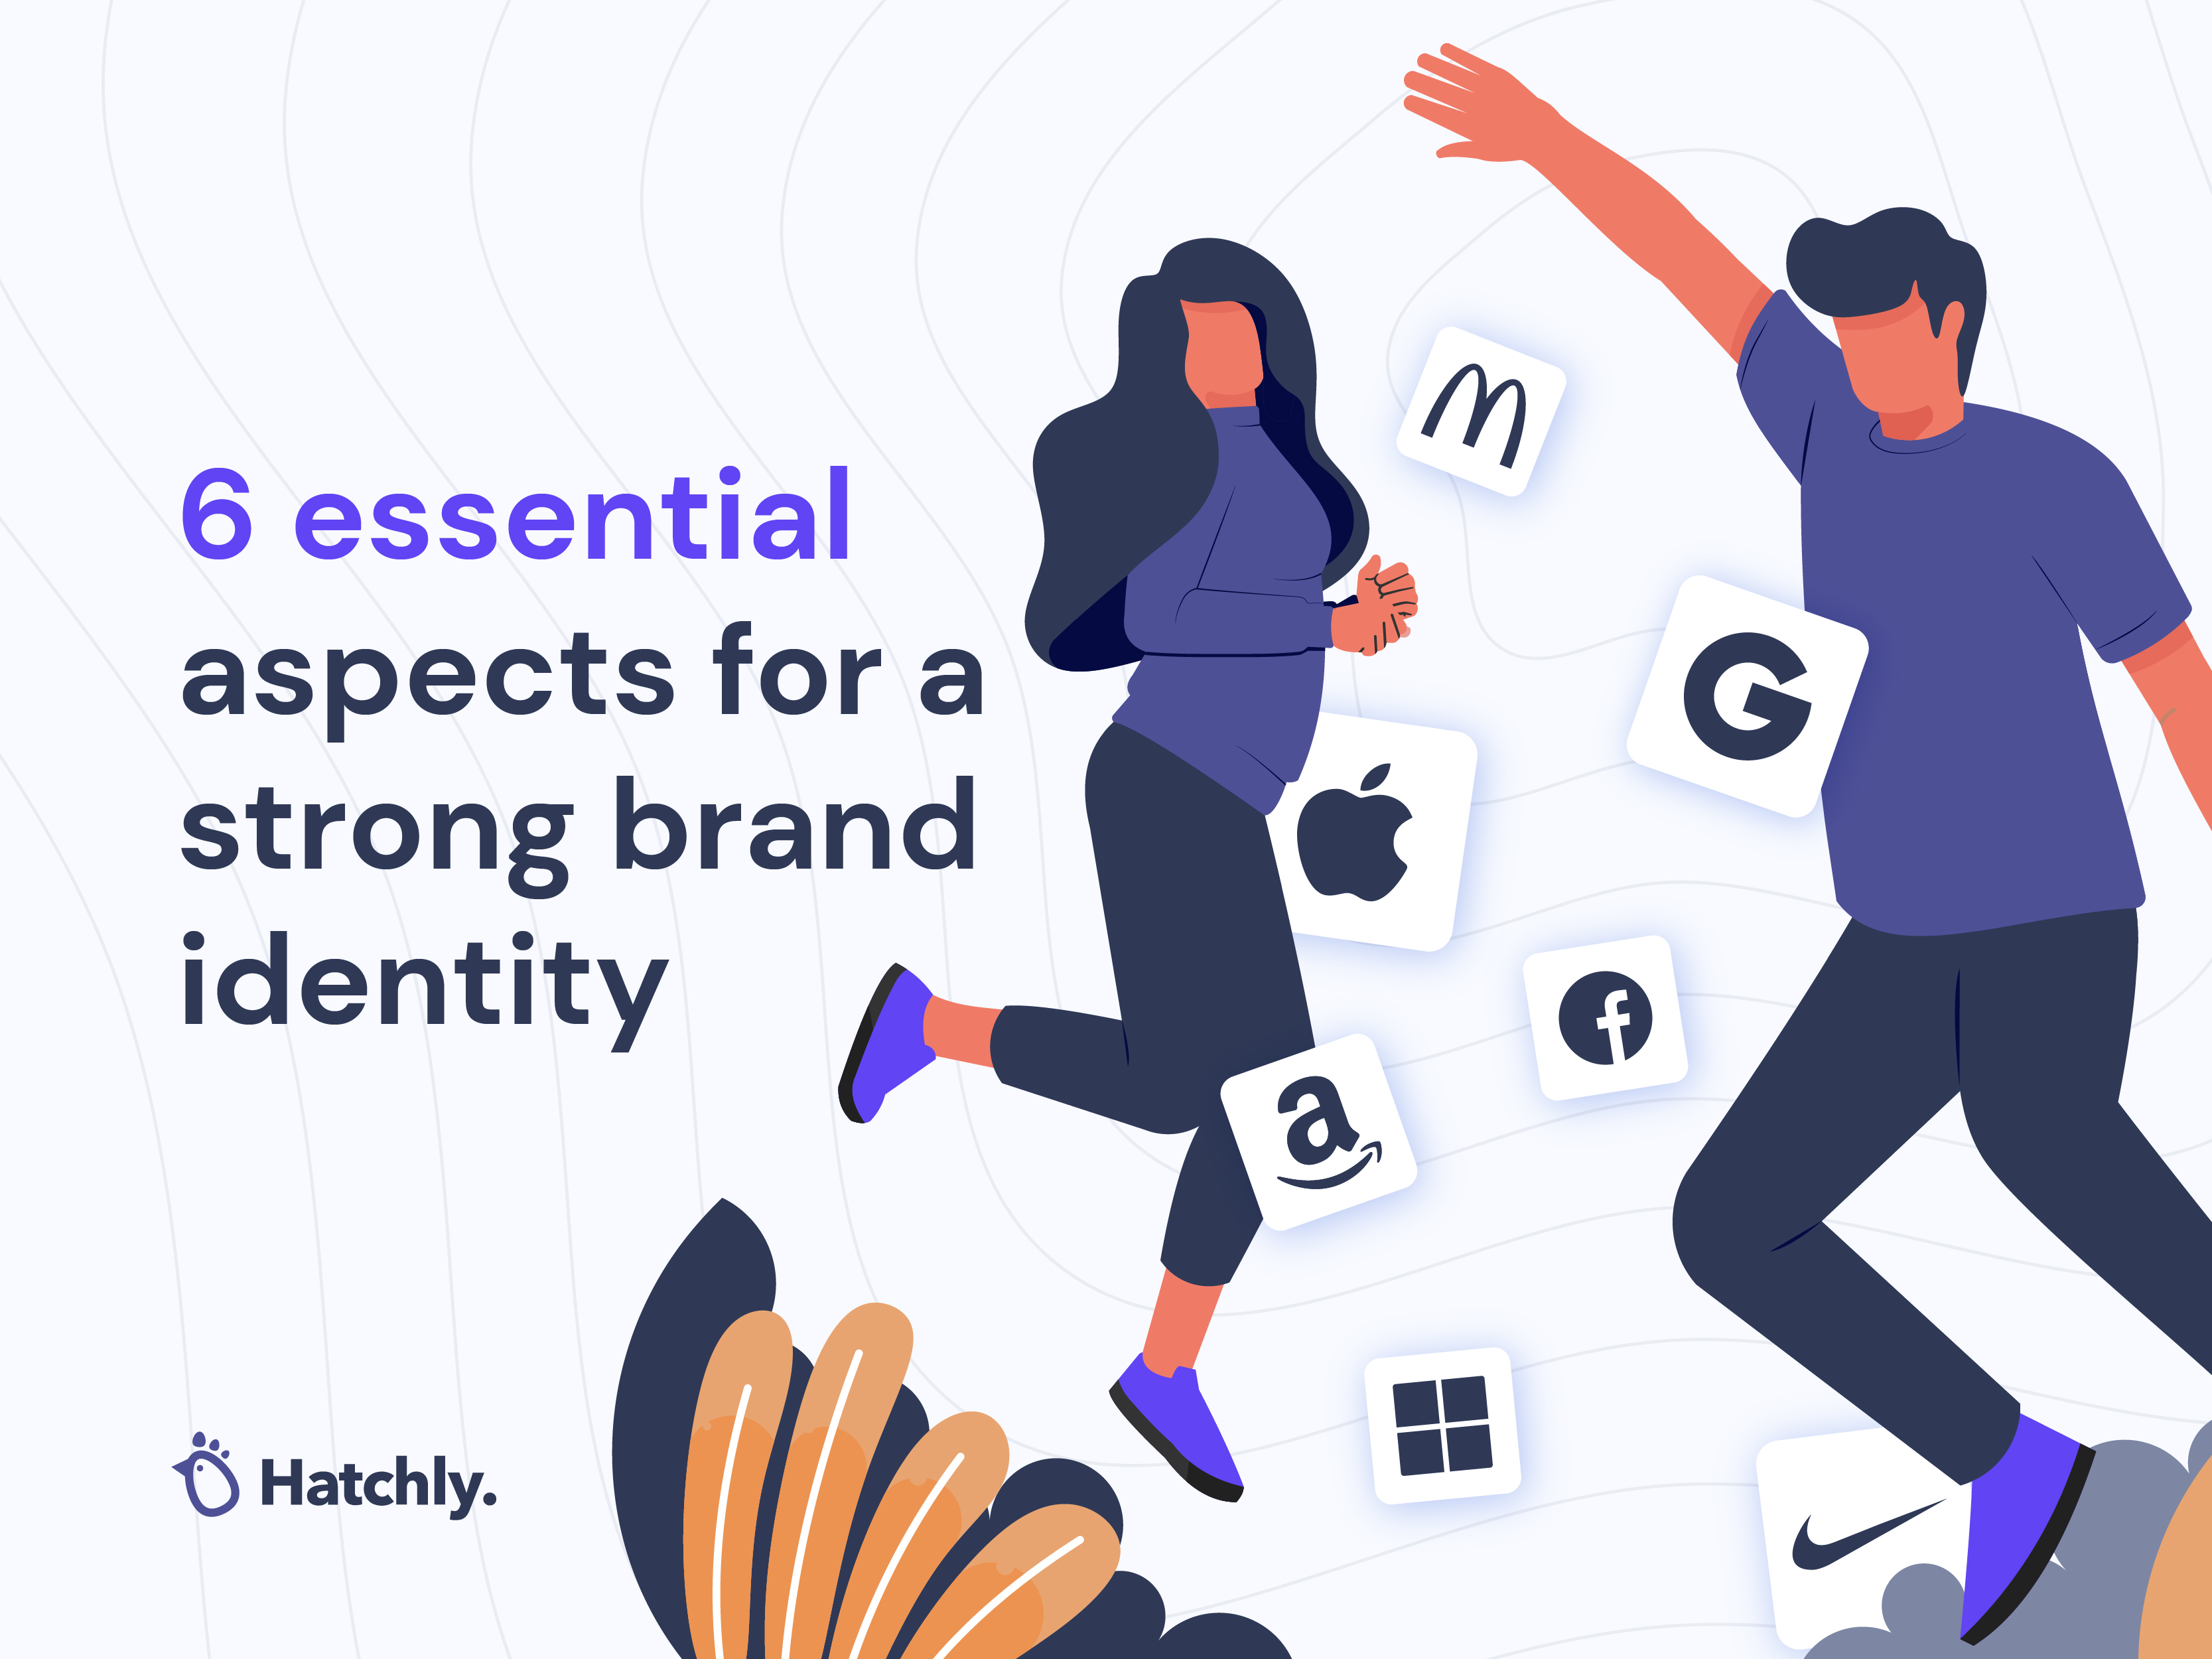 6 essential aspects for a strong brand identity